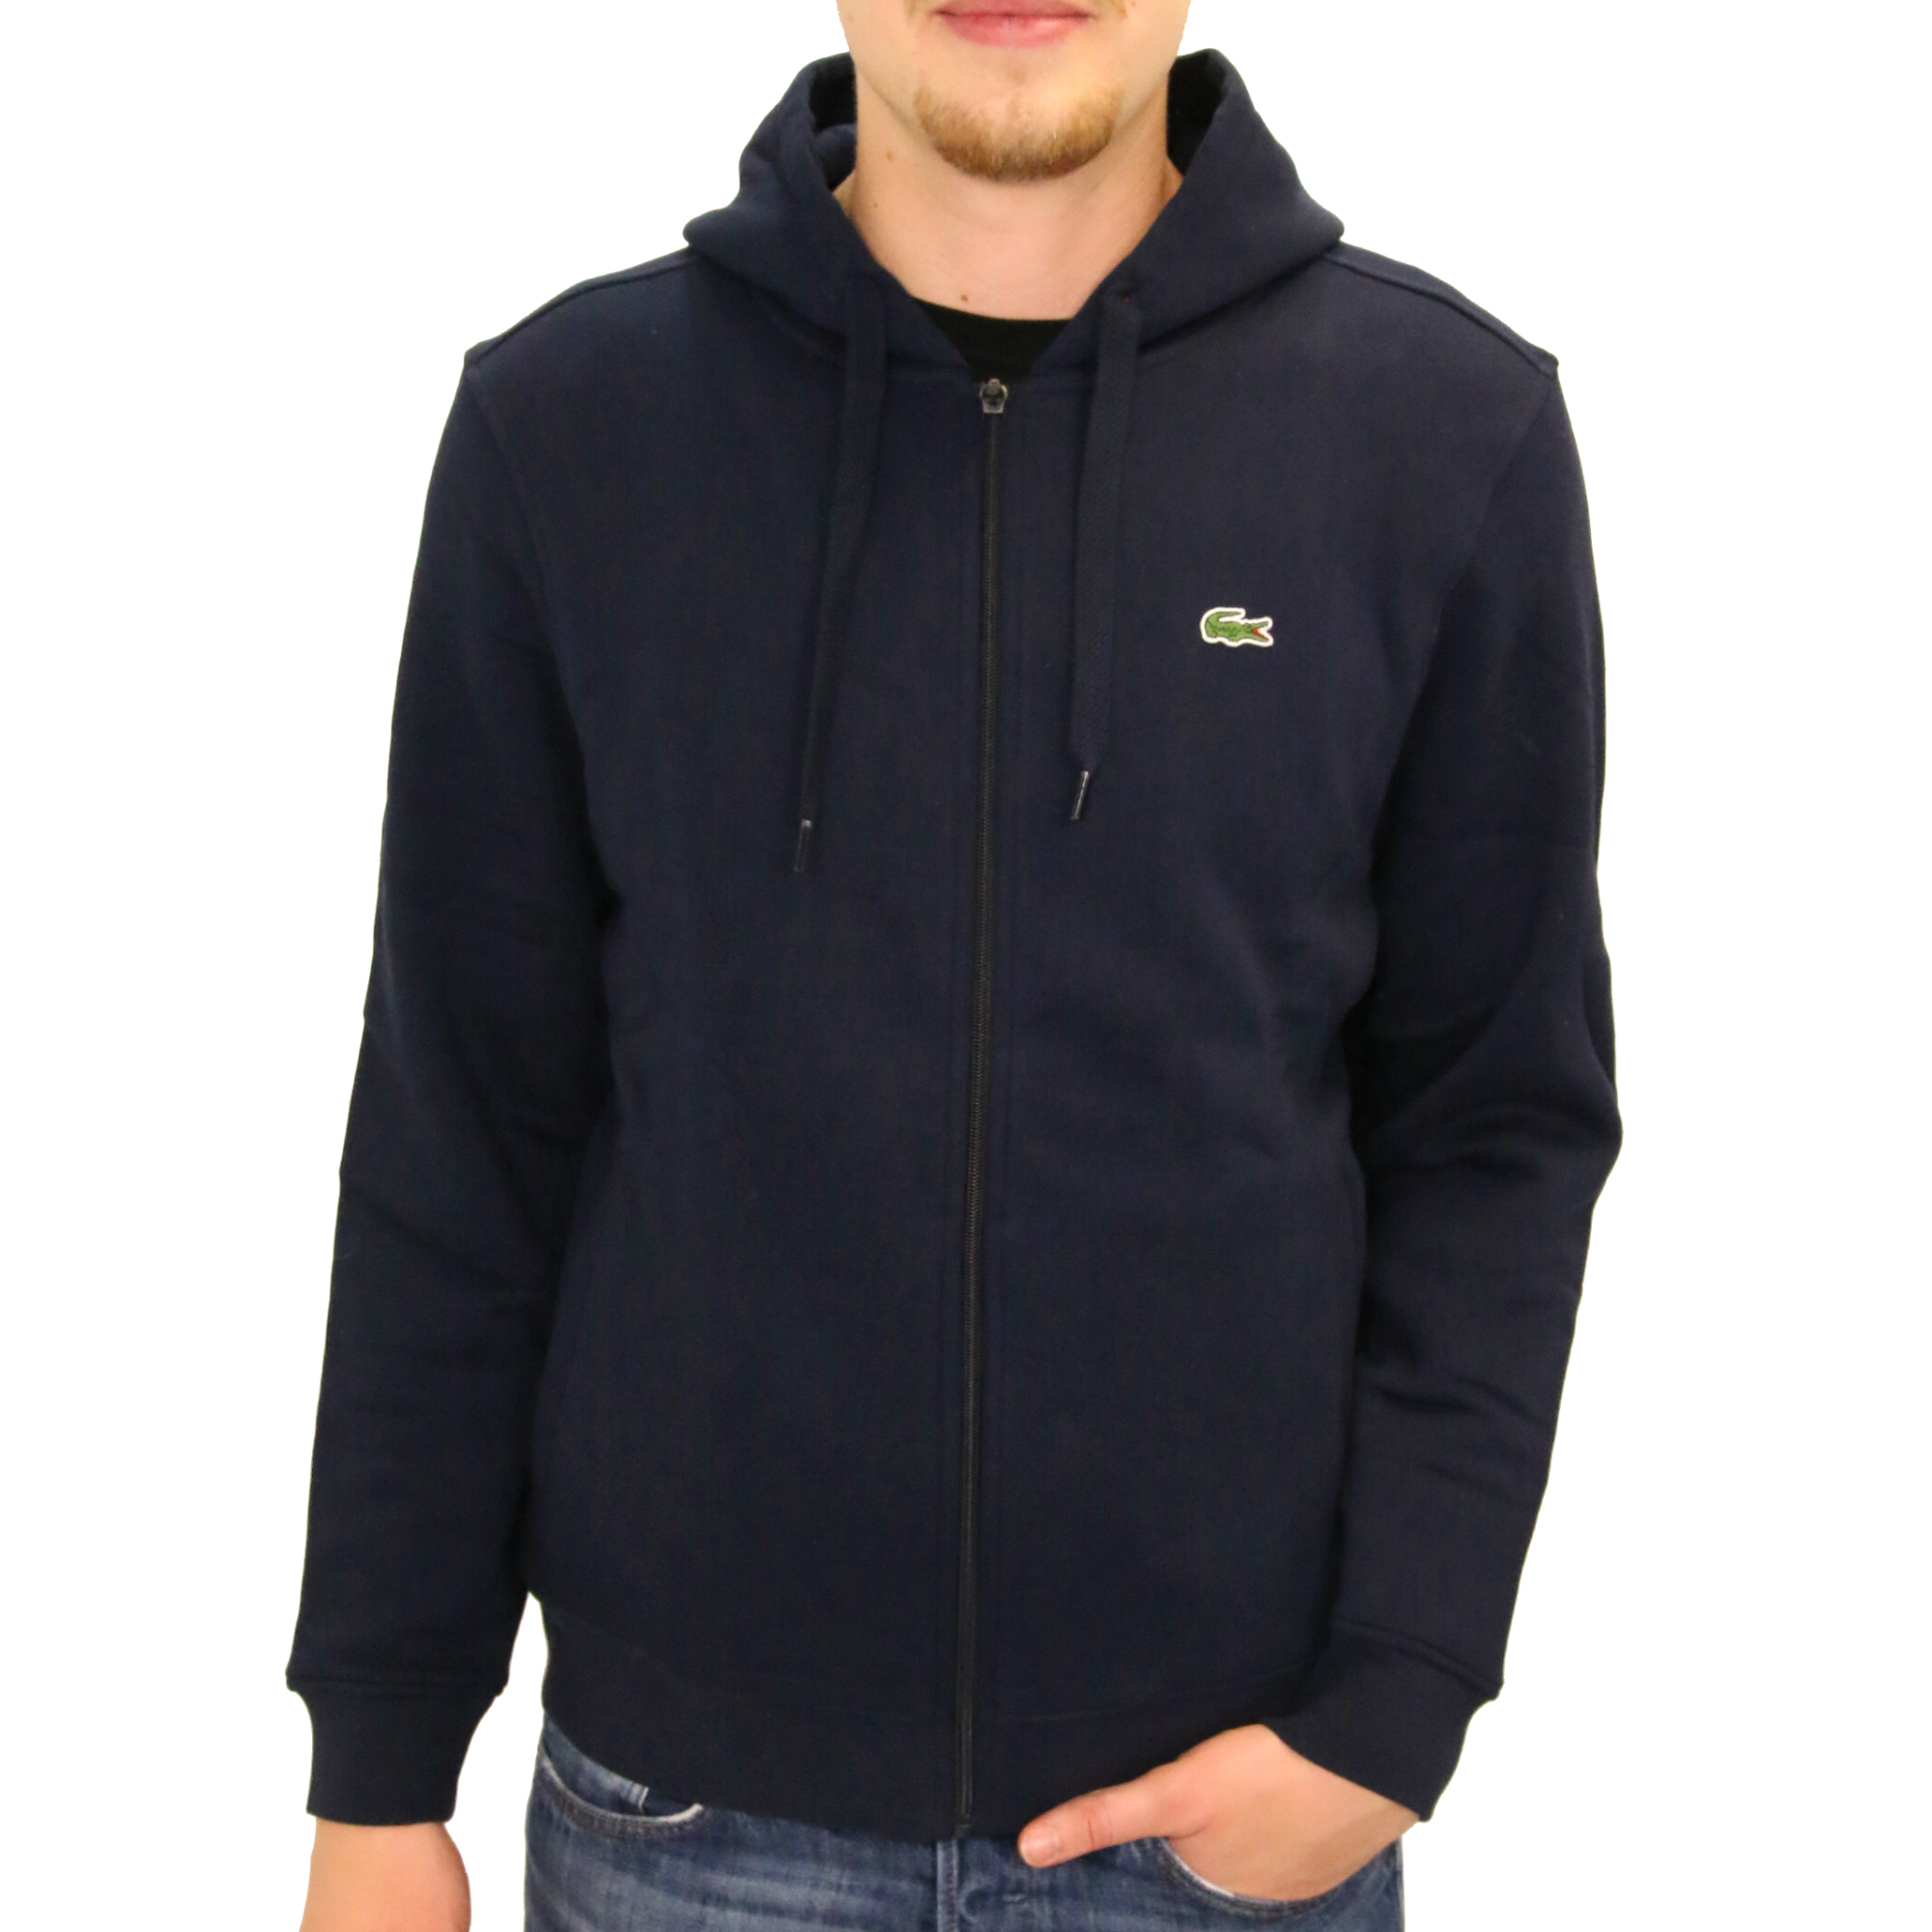 lacoste sport hooded zippered sweatshirt hoodie jacket men. Black Bedroom Furniture Sets. Home Design Ideas